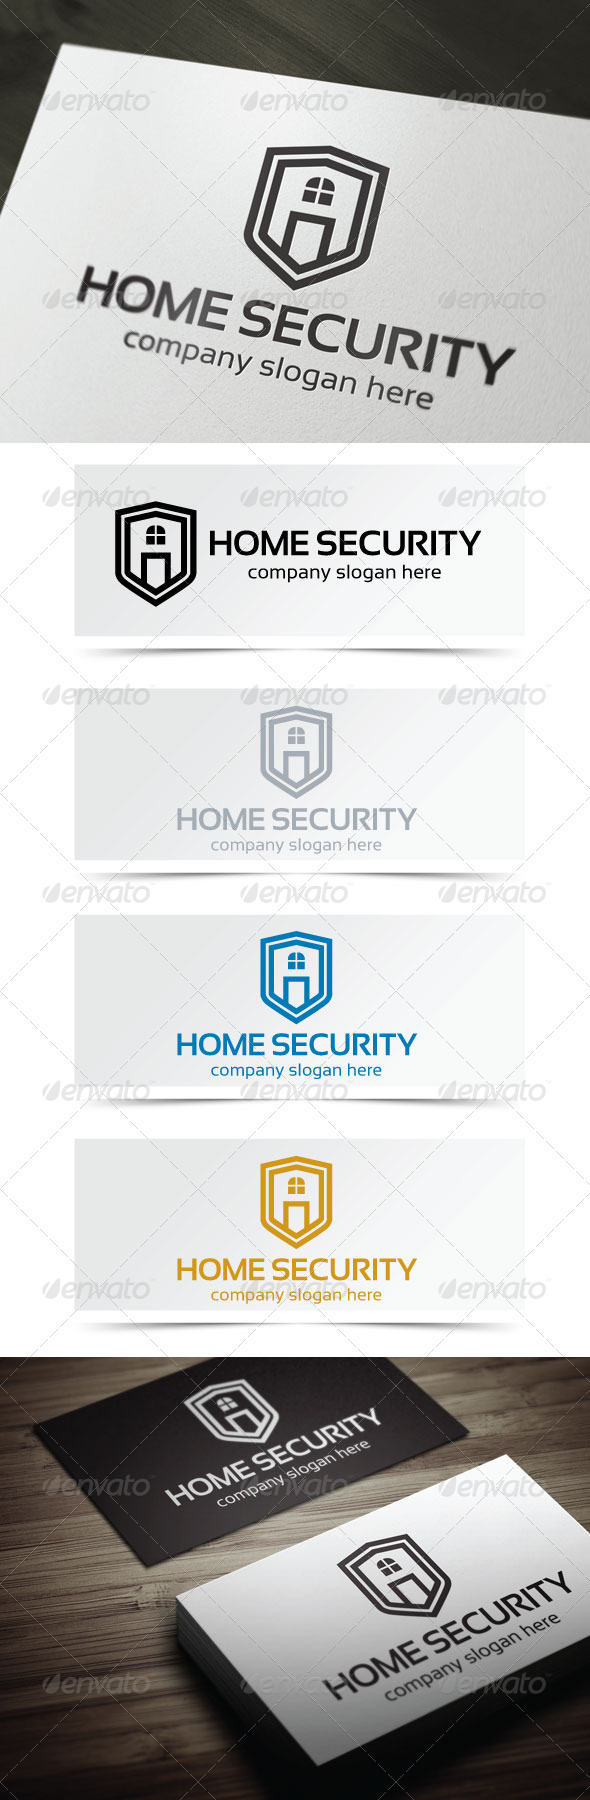 GraphicRiver Home Security 4874916